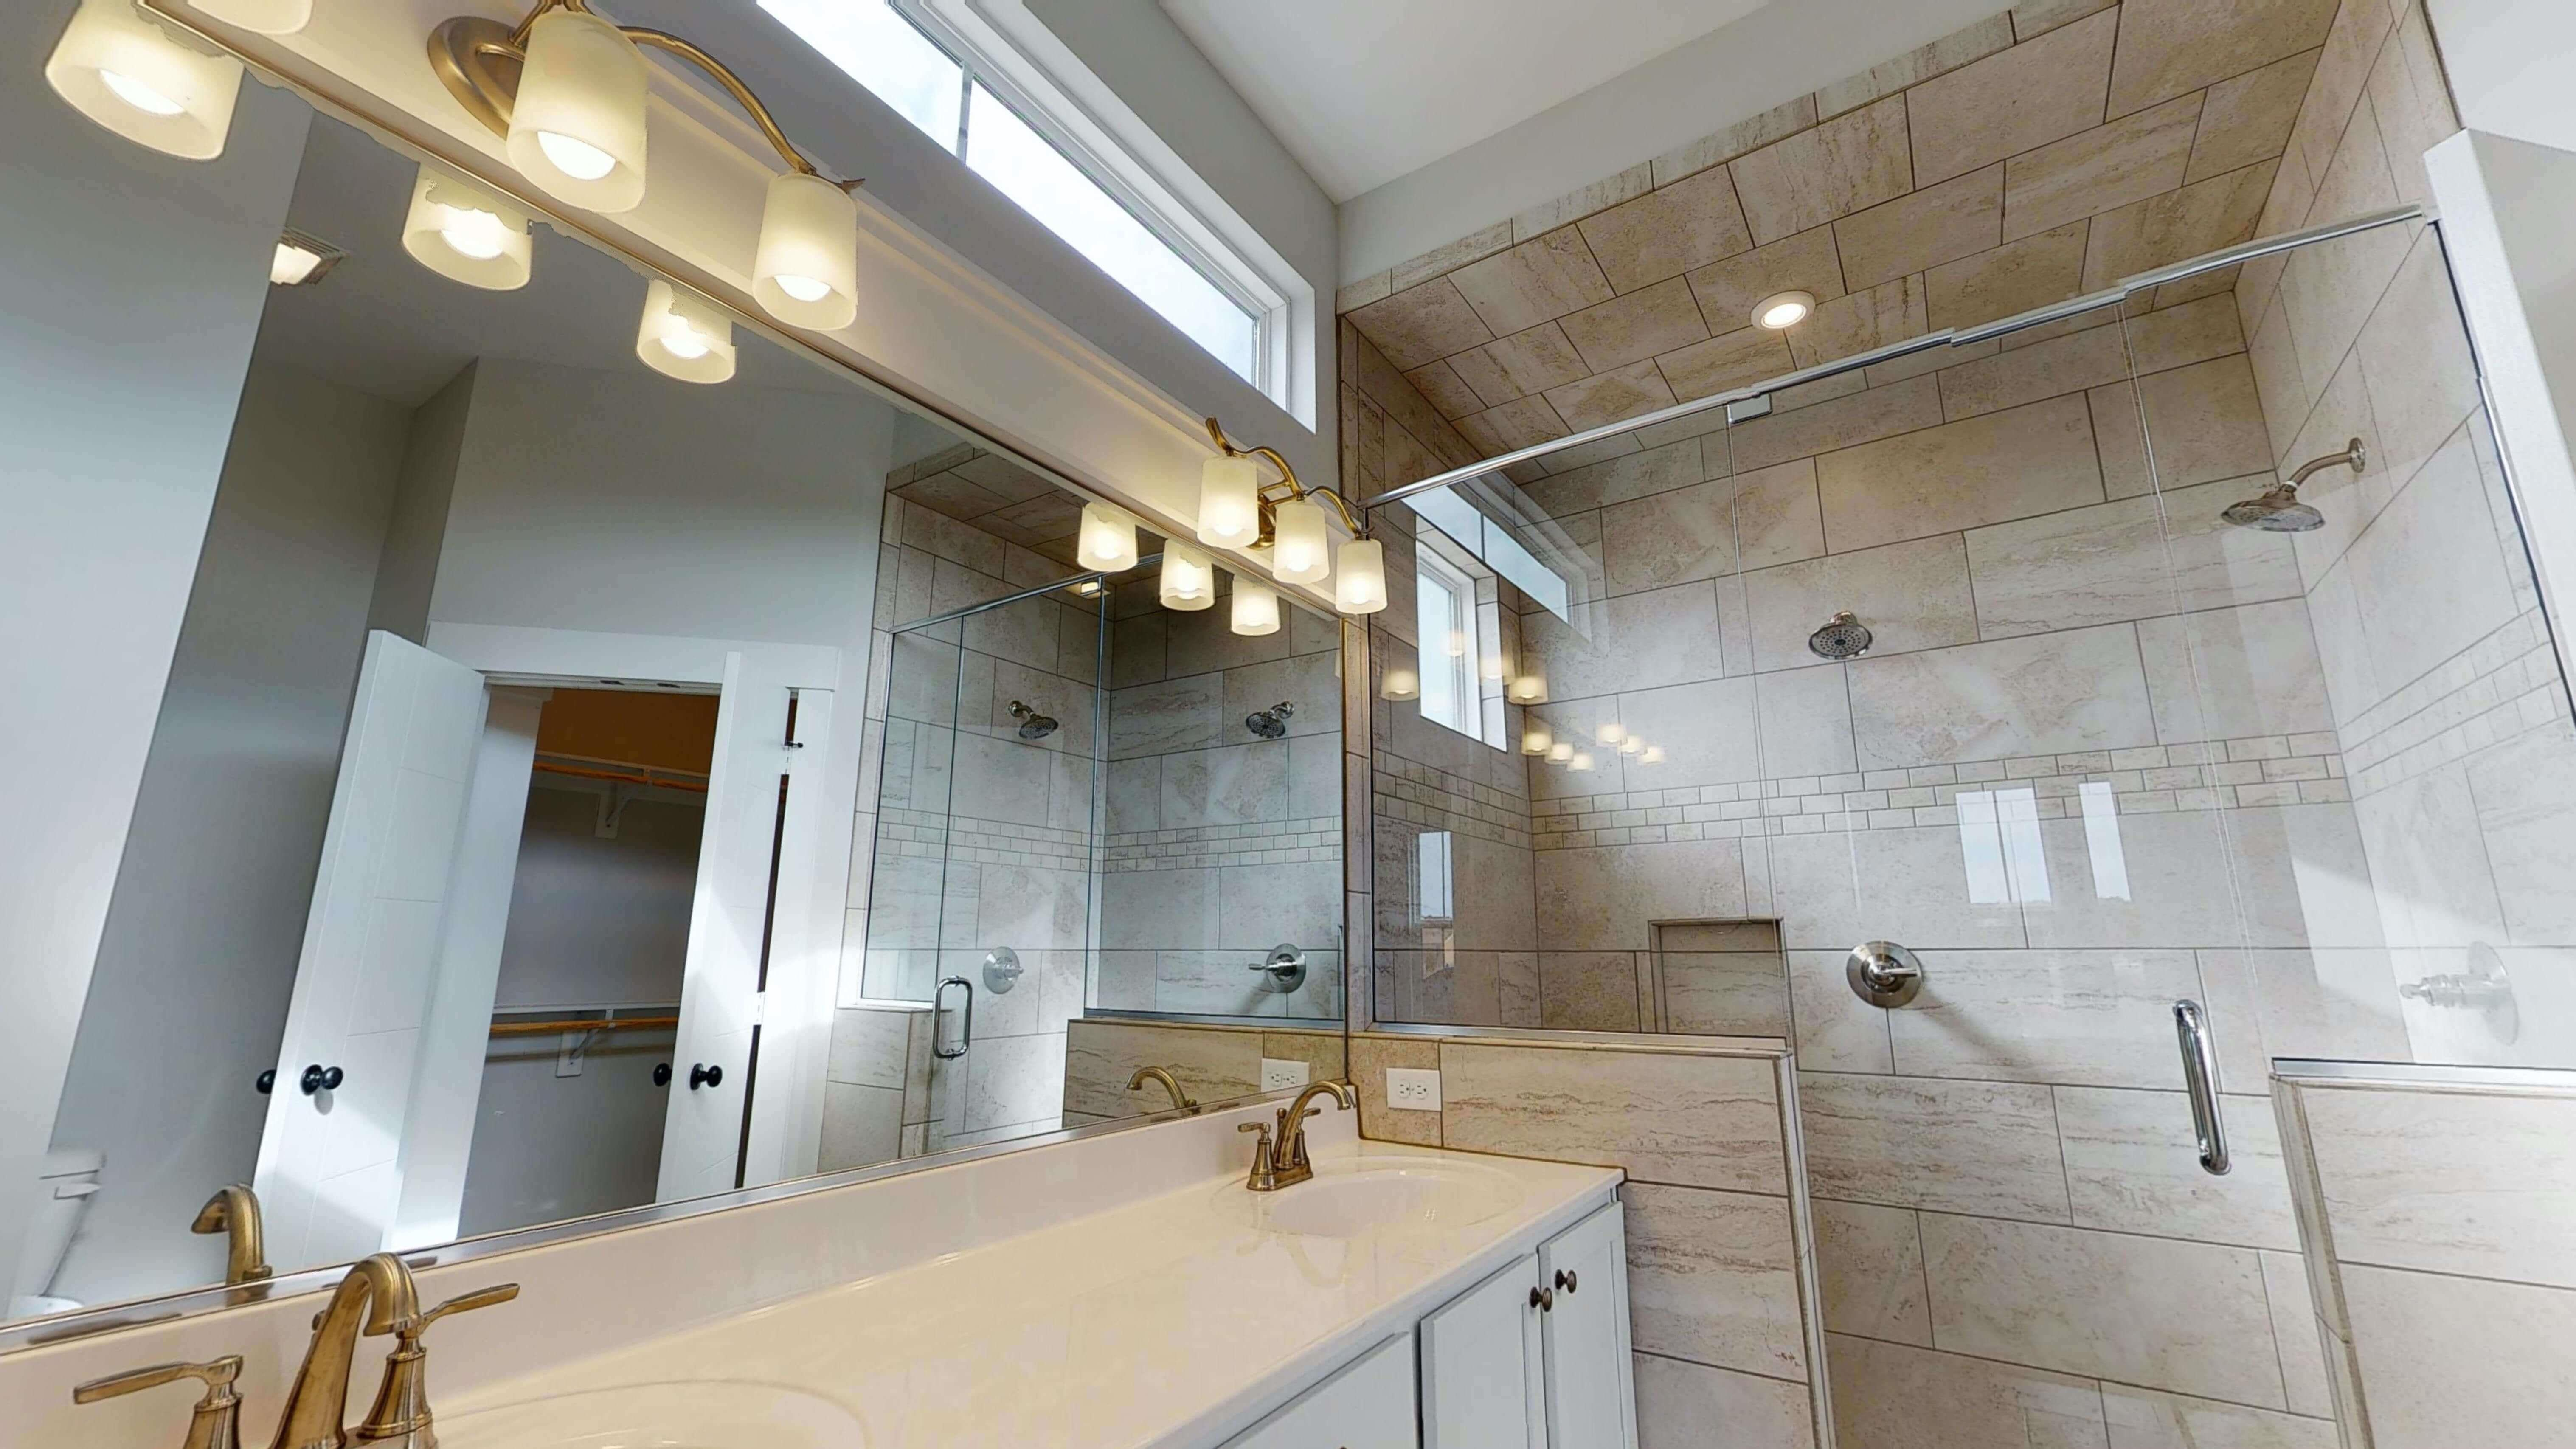 Bathroom featured in the Nottoway Farmhouse By Stephen Alexander Homes in Outer Banks, NC